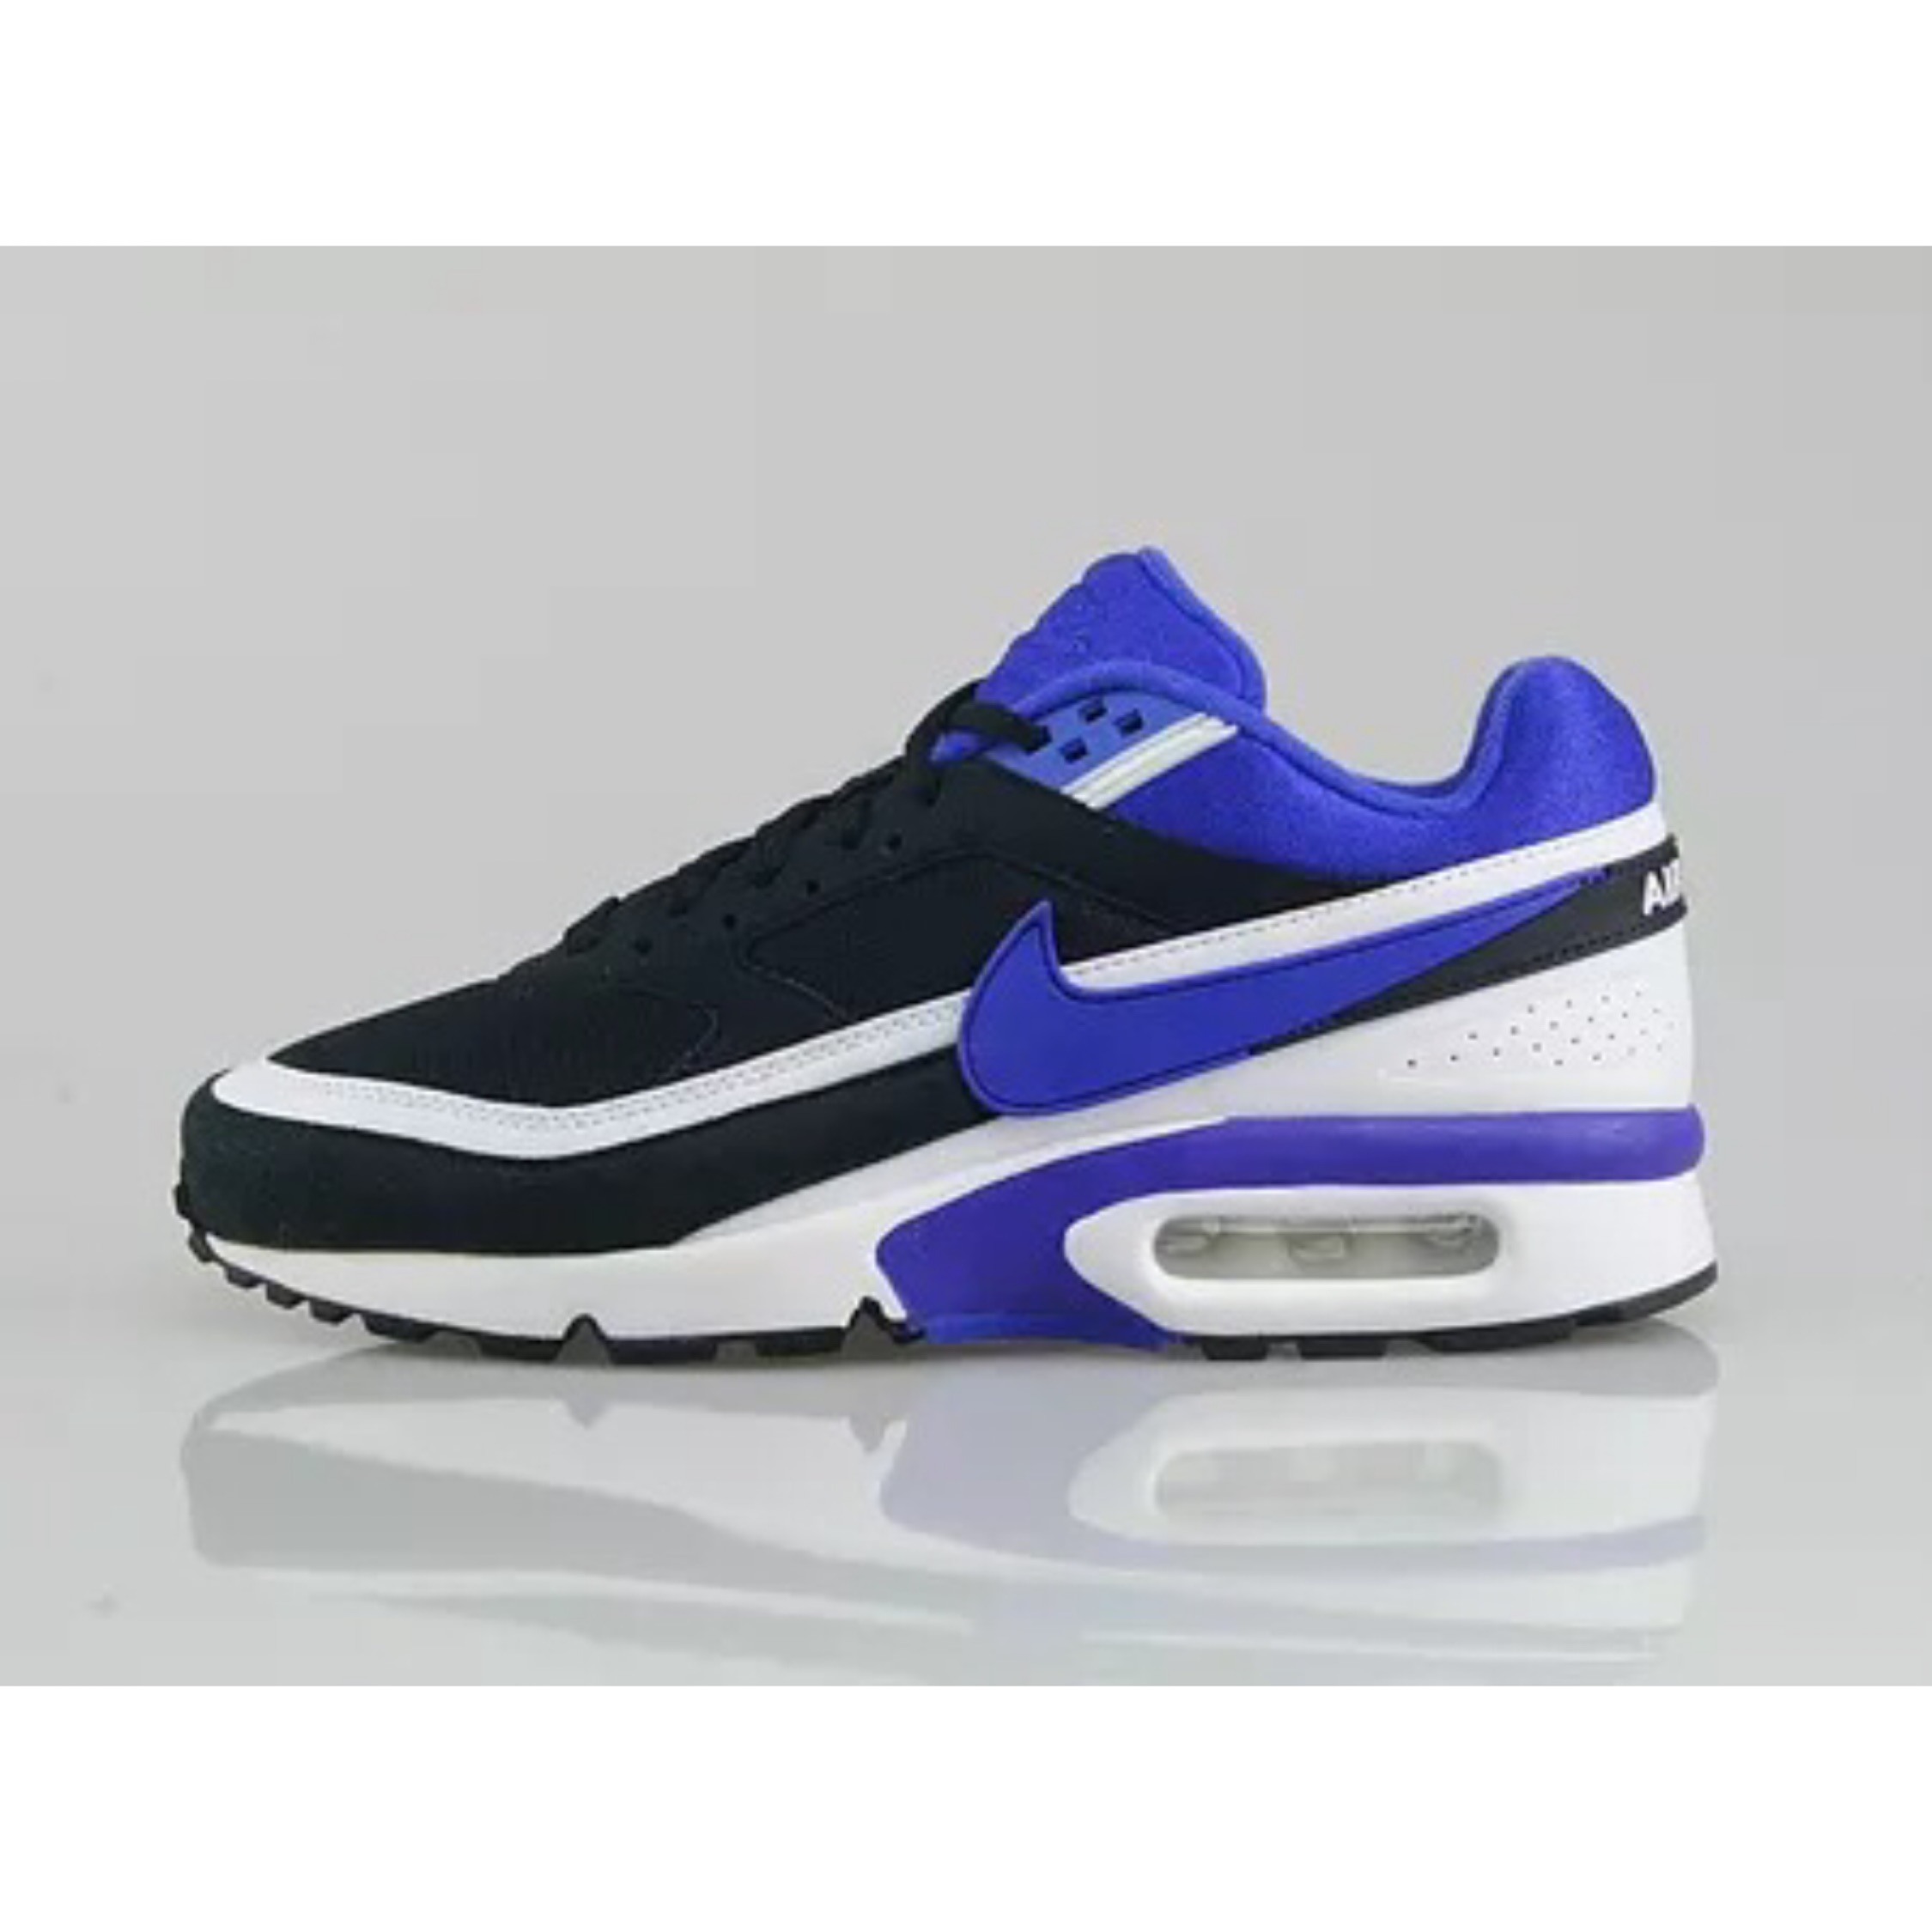 nouvelle arrivee a9427 1f695 Nike Air Max Bw